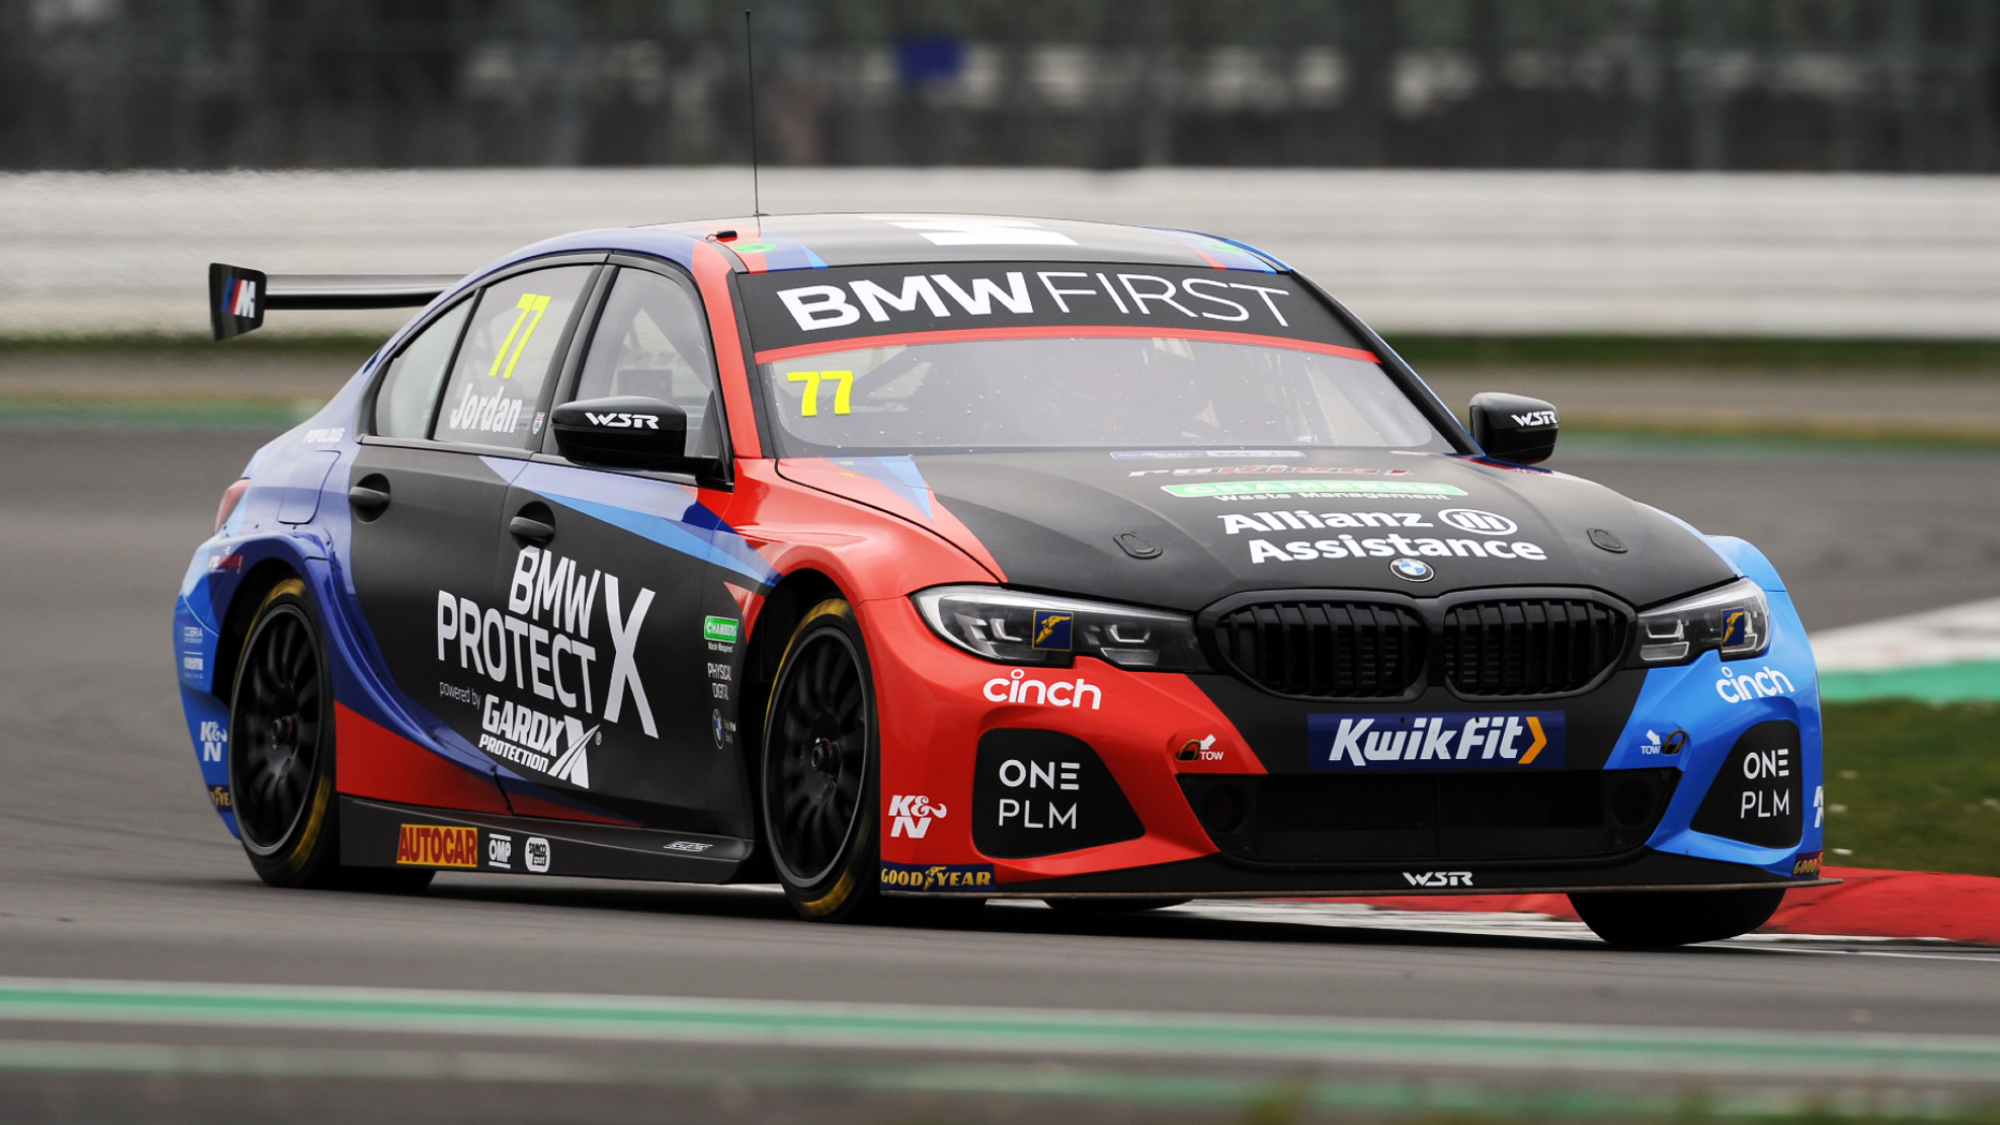 Andrew Jordan and Team BMW part ways ahead of 2020 BTCC season